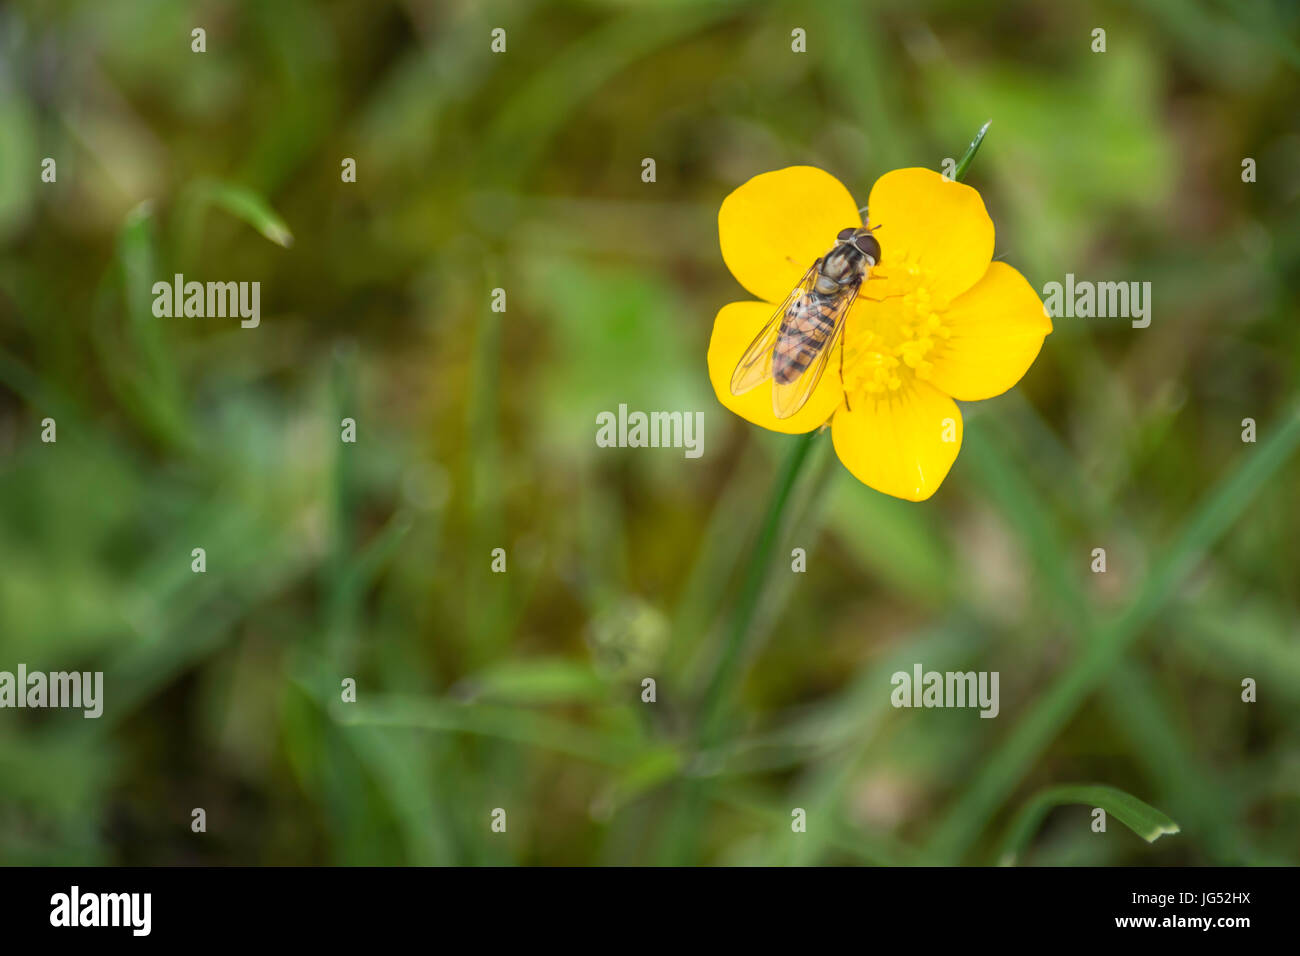 Buttercup flower being pollinated by a wasp - Stock Image